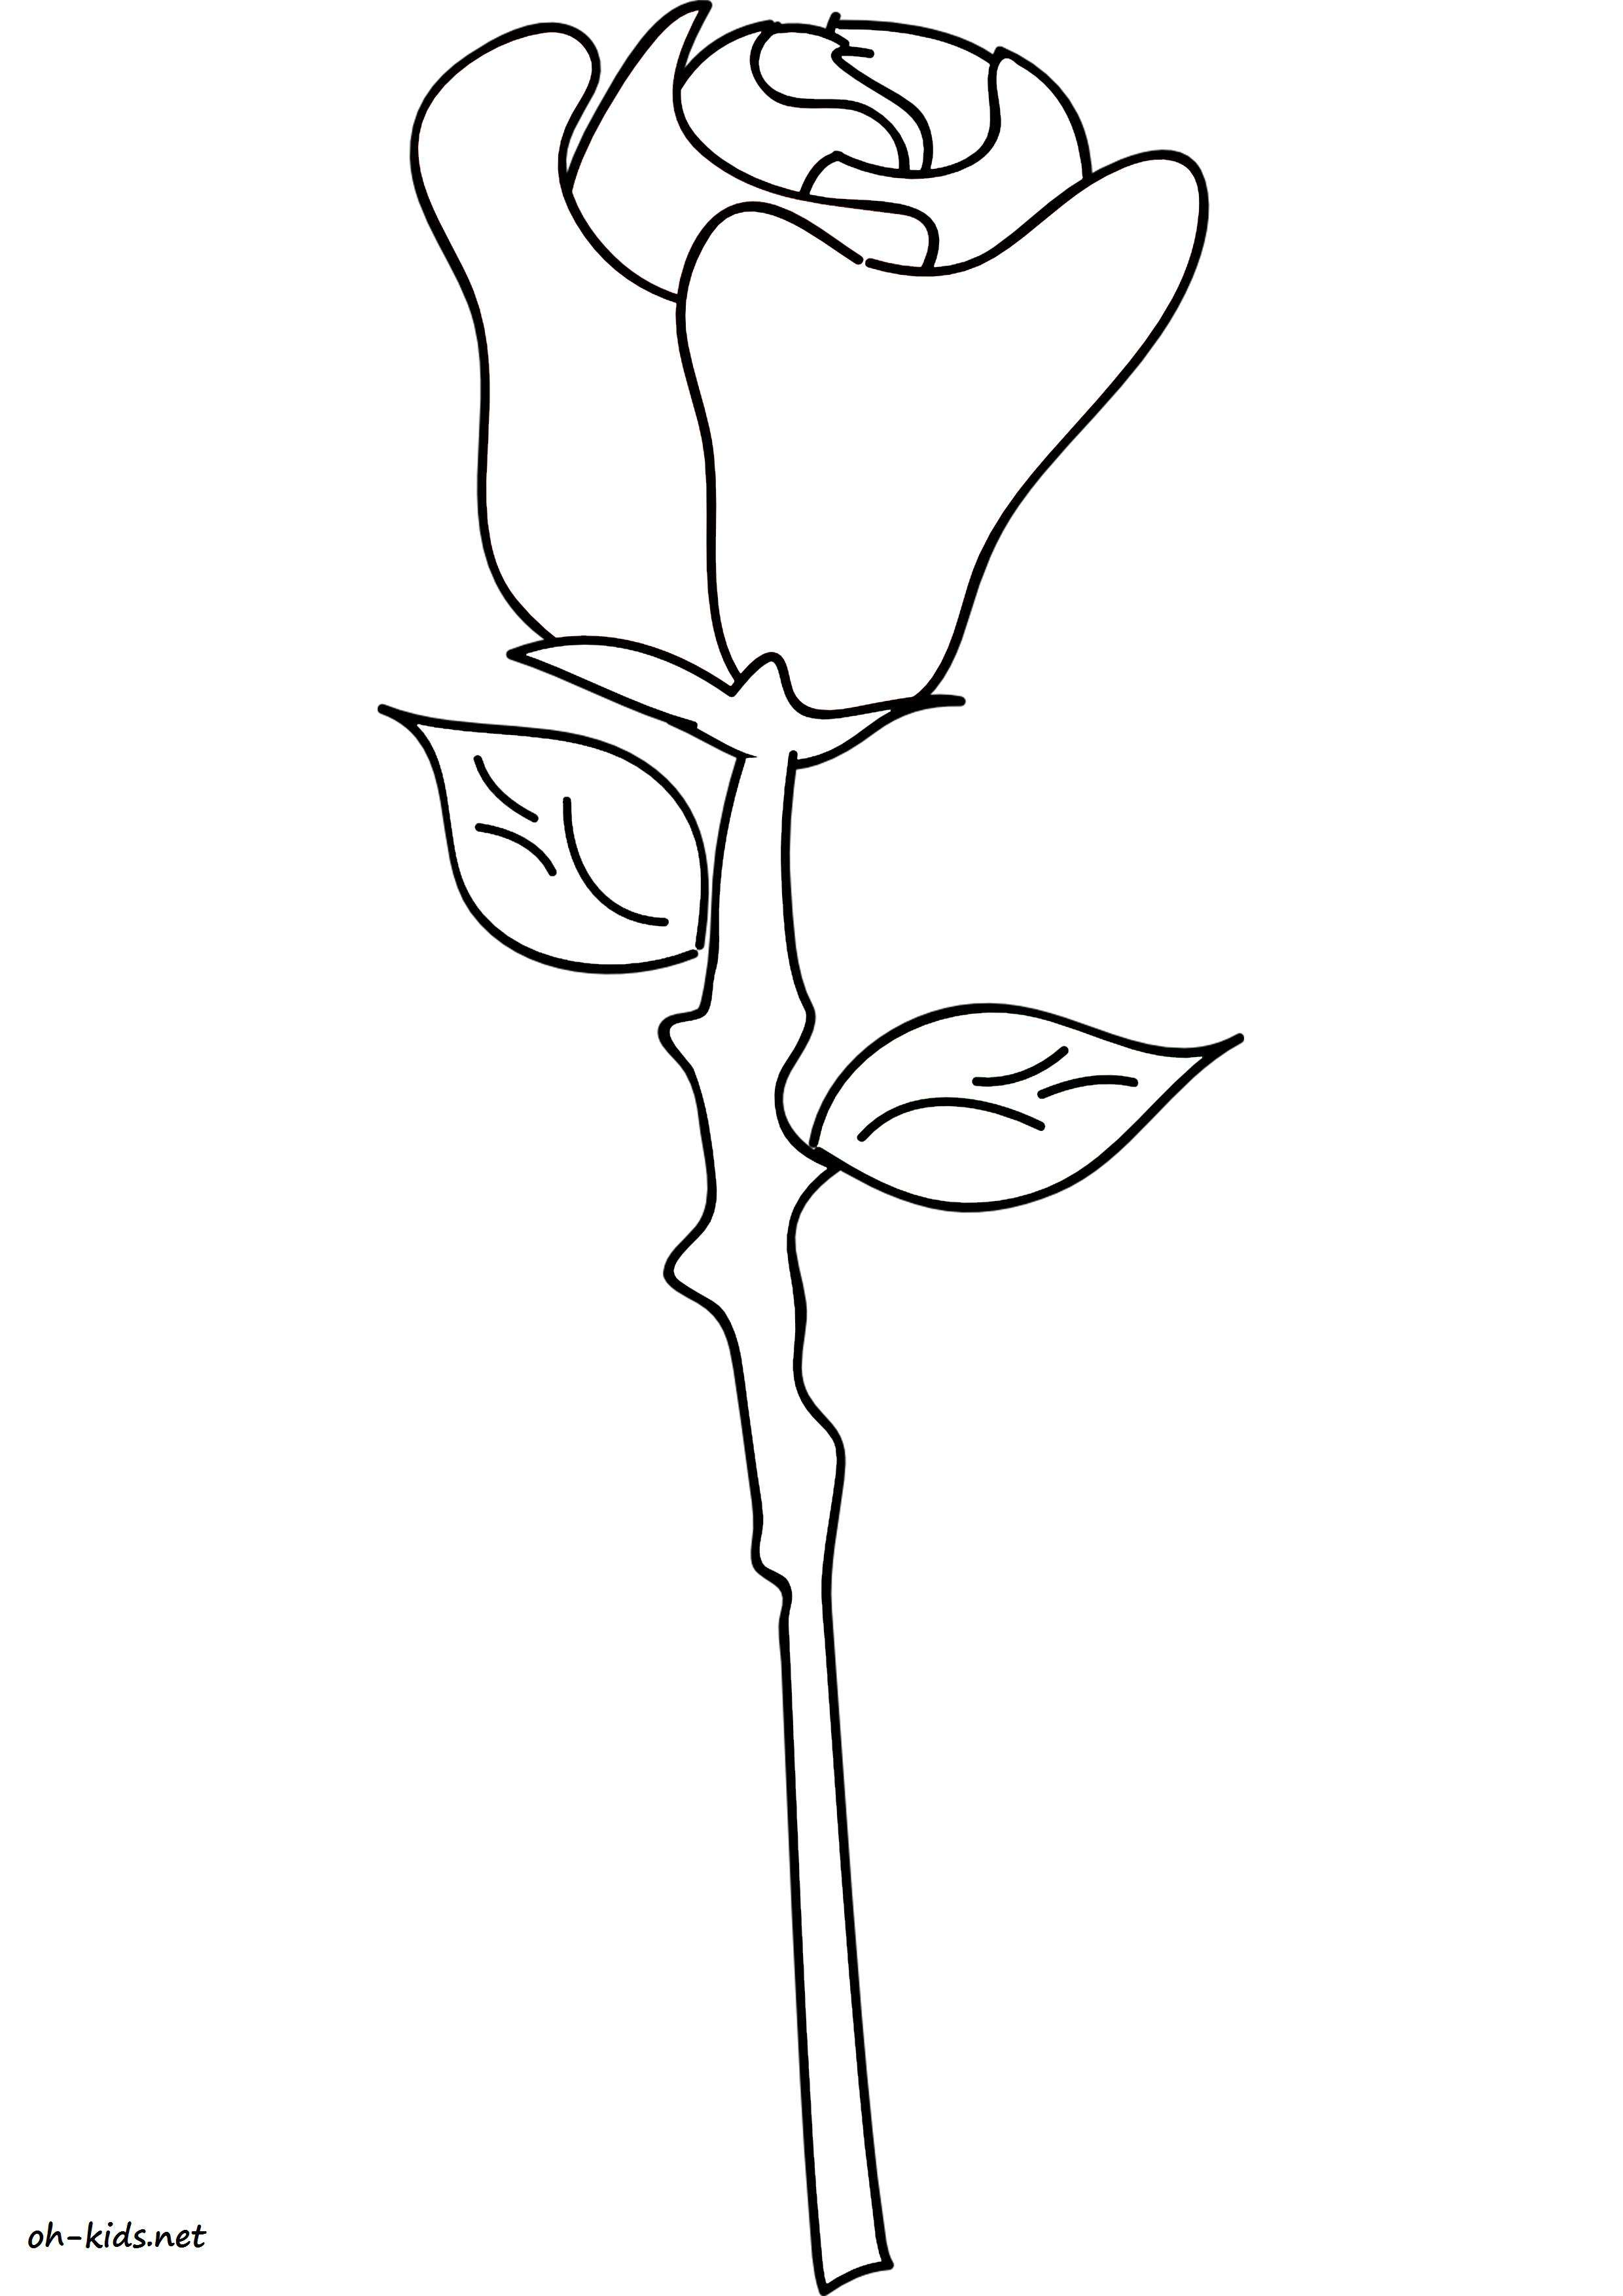 coloriage roses - Dessin #1470